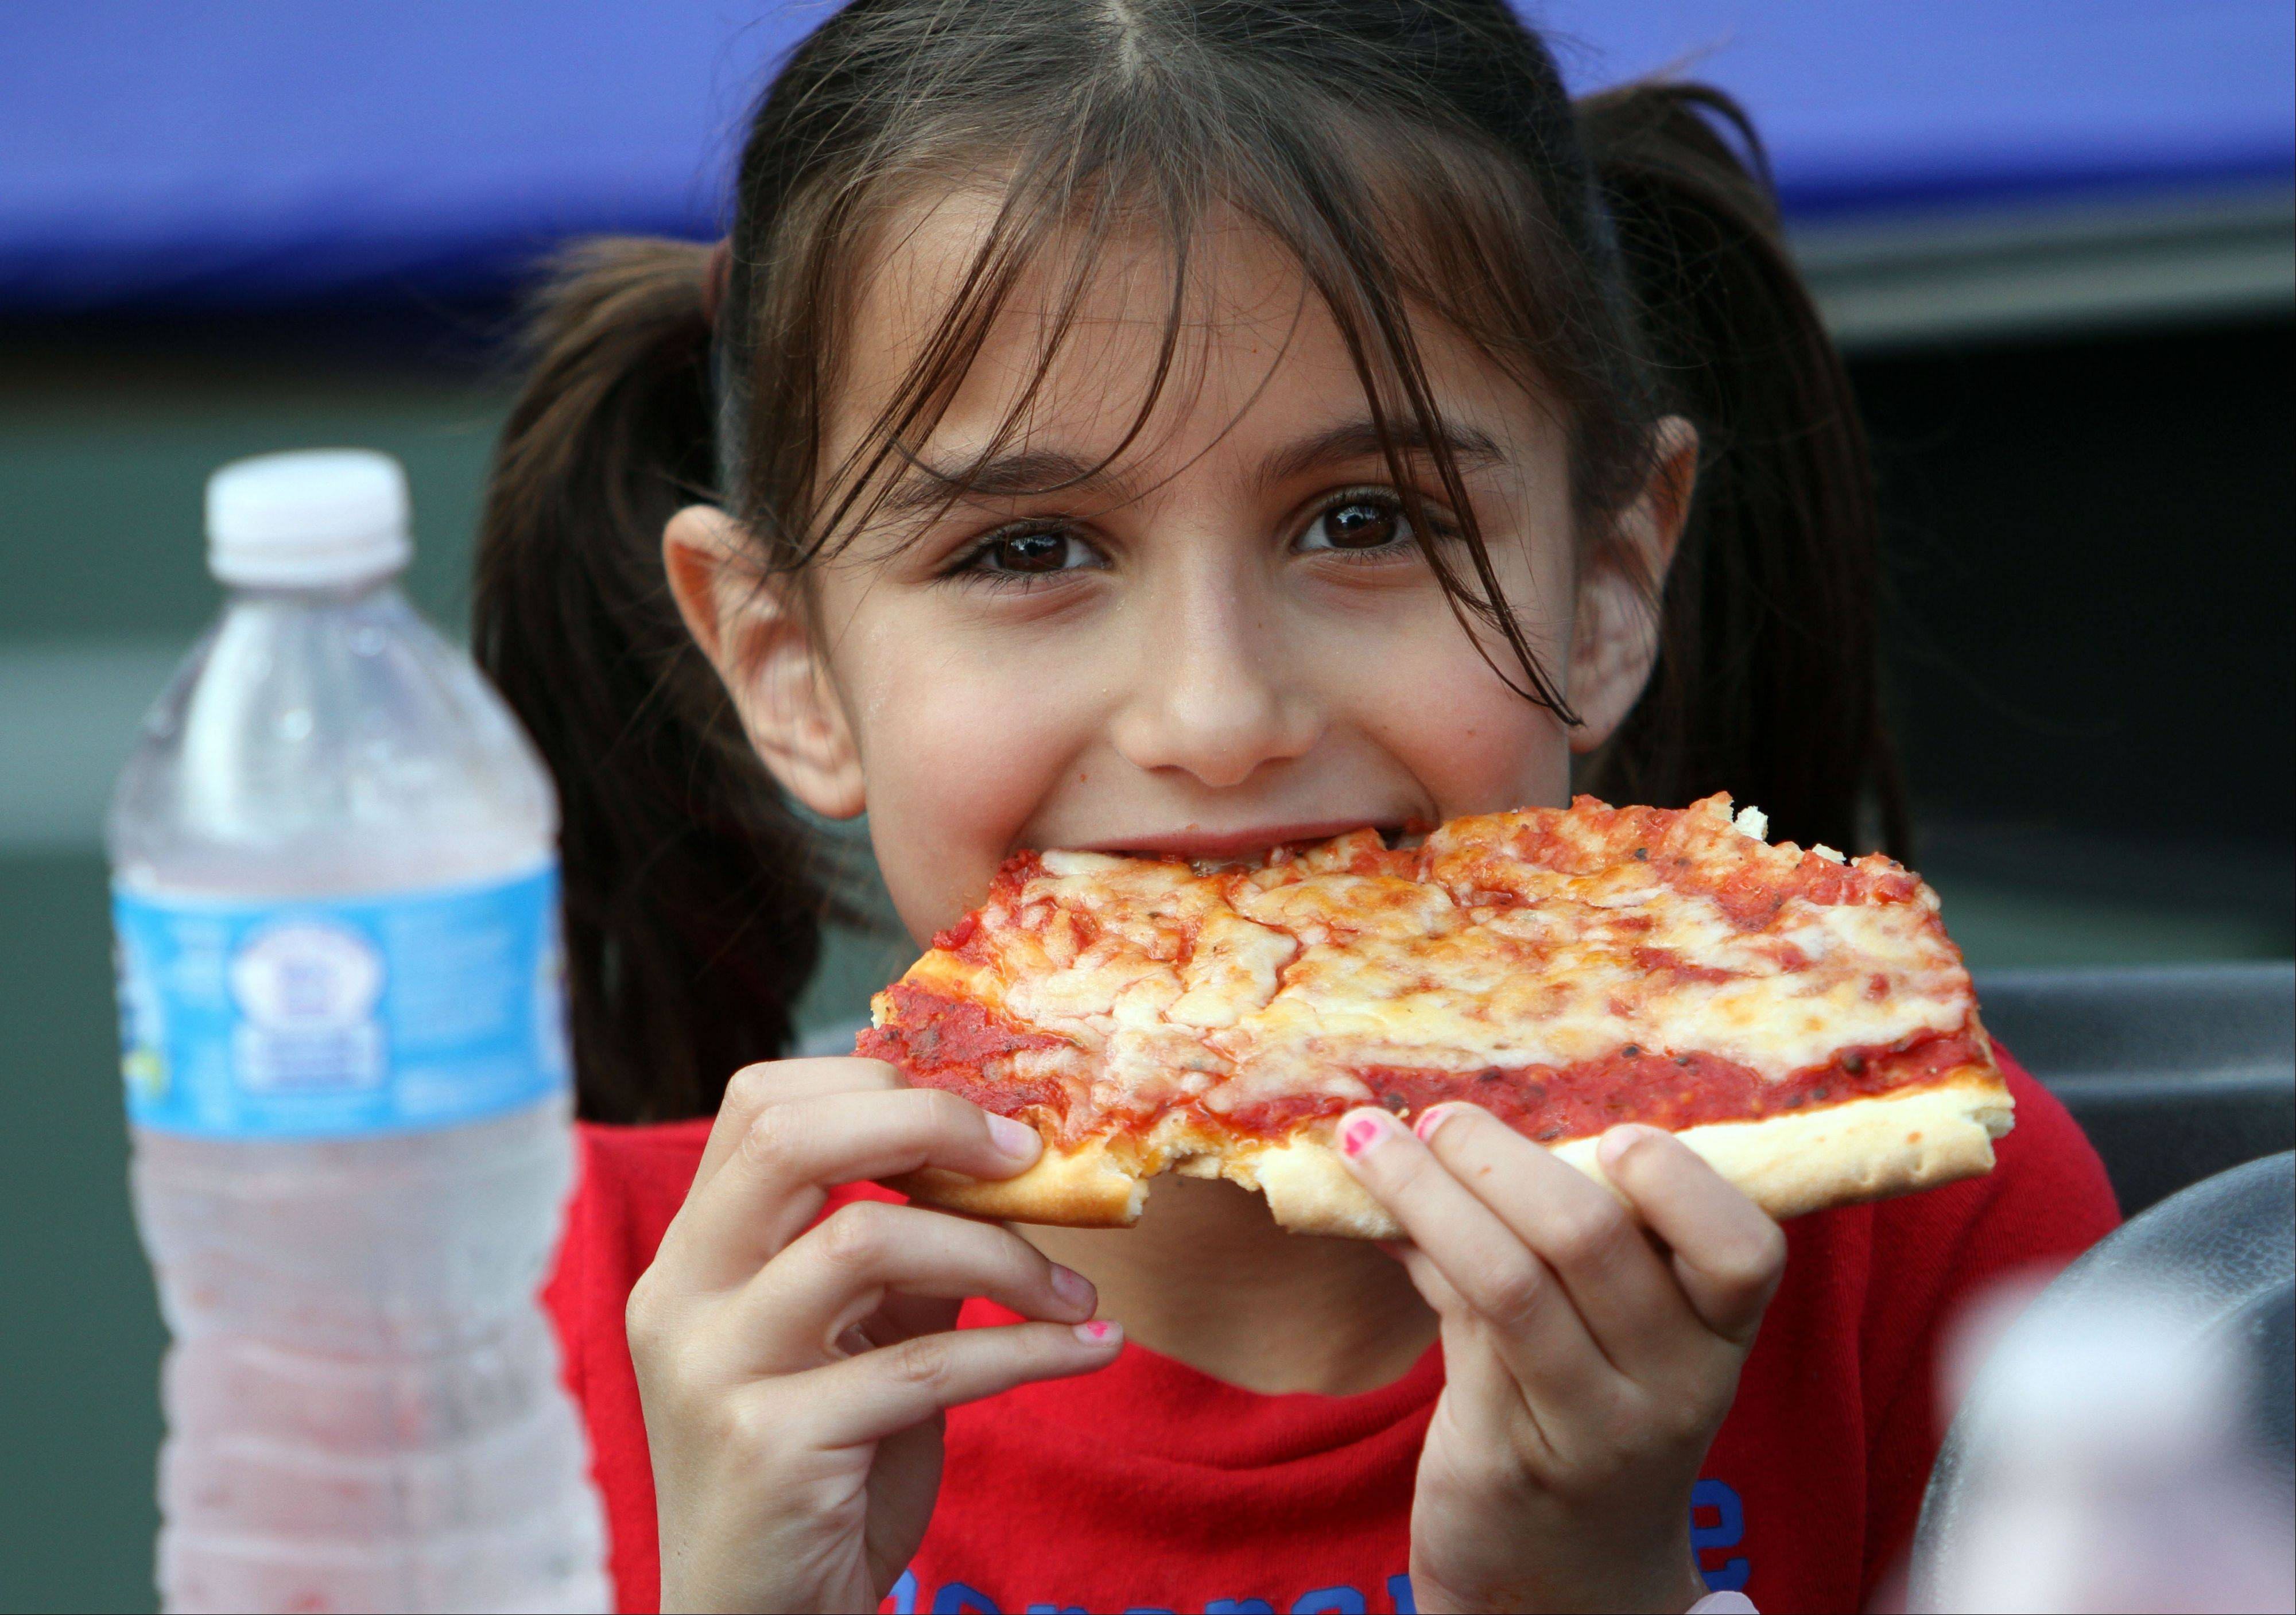 Eight-year-old Amanda Bloom of Lincolnshire eats pizza during Lincolnshire's Red, White & Boom celebration Wednesday in Spring Lake Park.